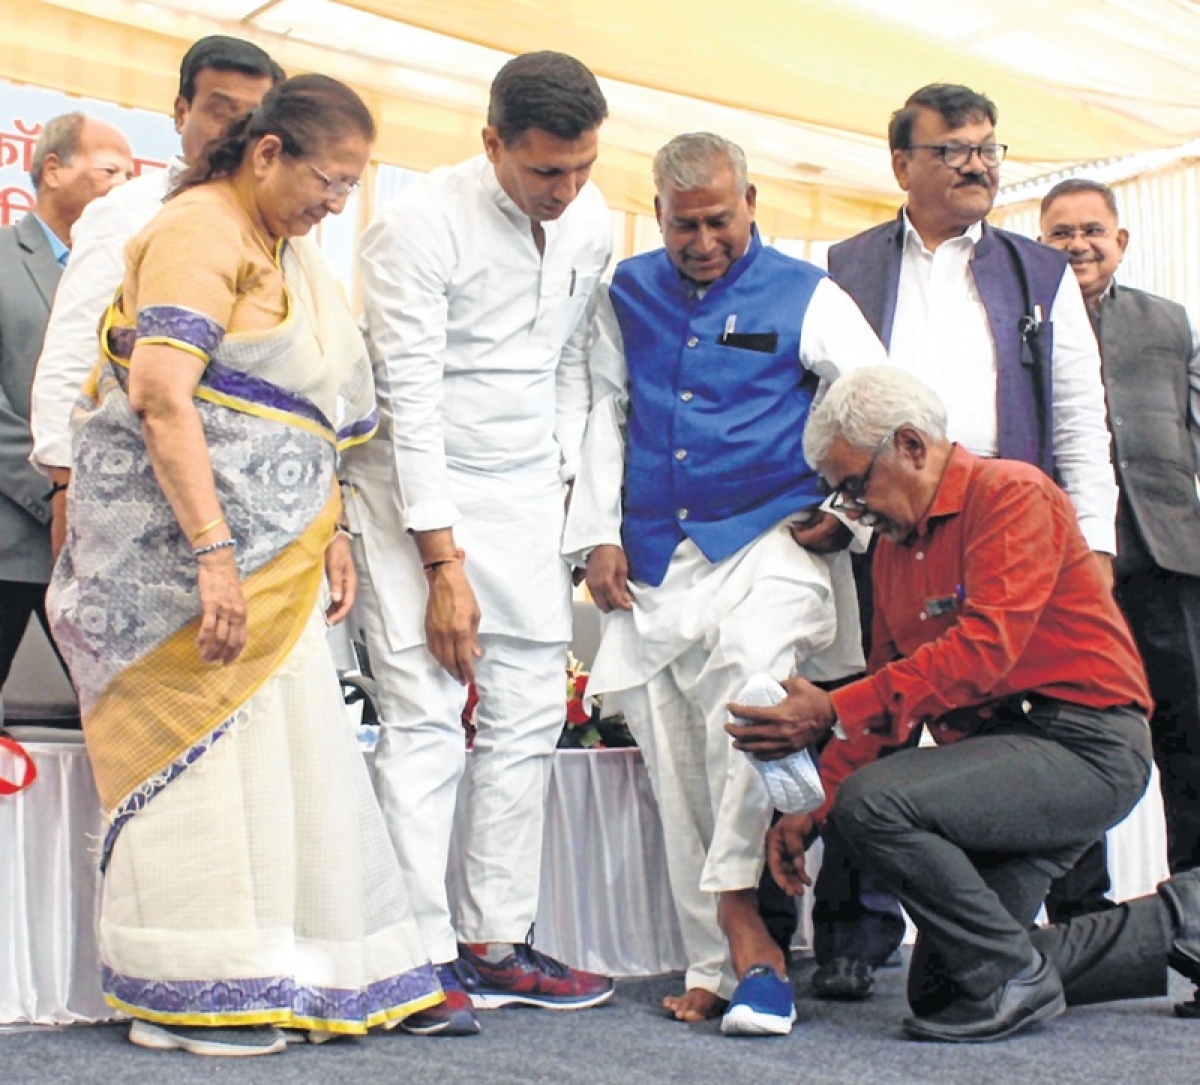 Indore: Don't paint tycoons with political hue, says Tai